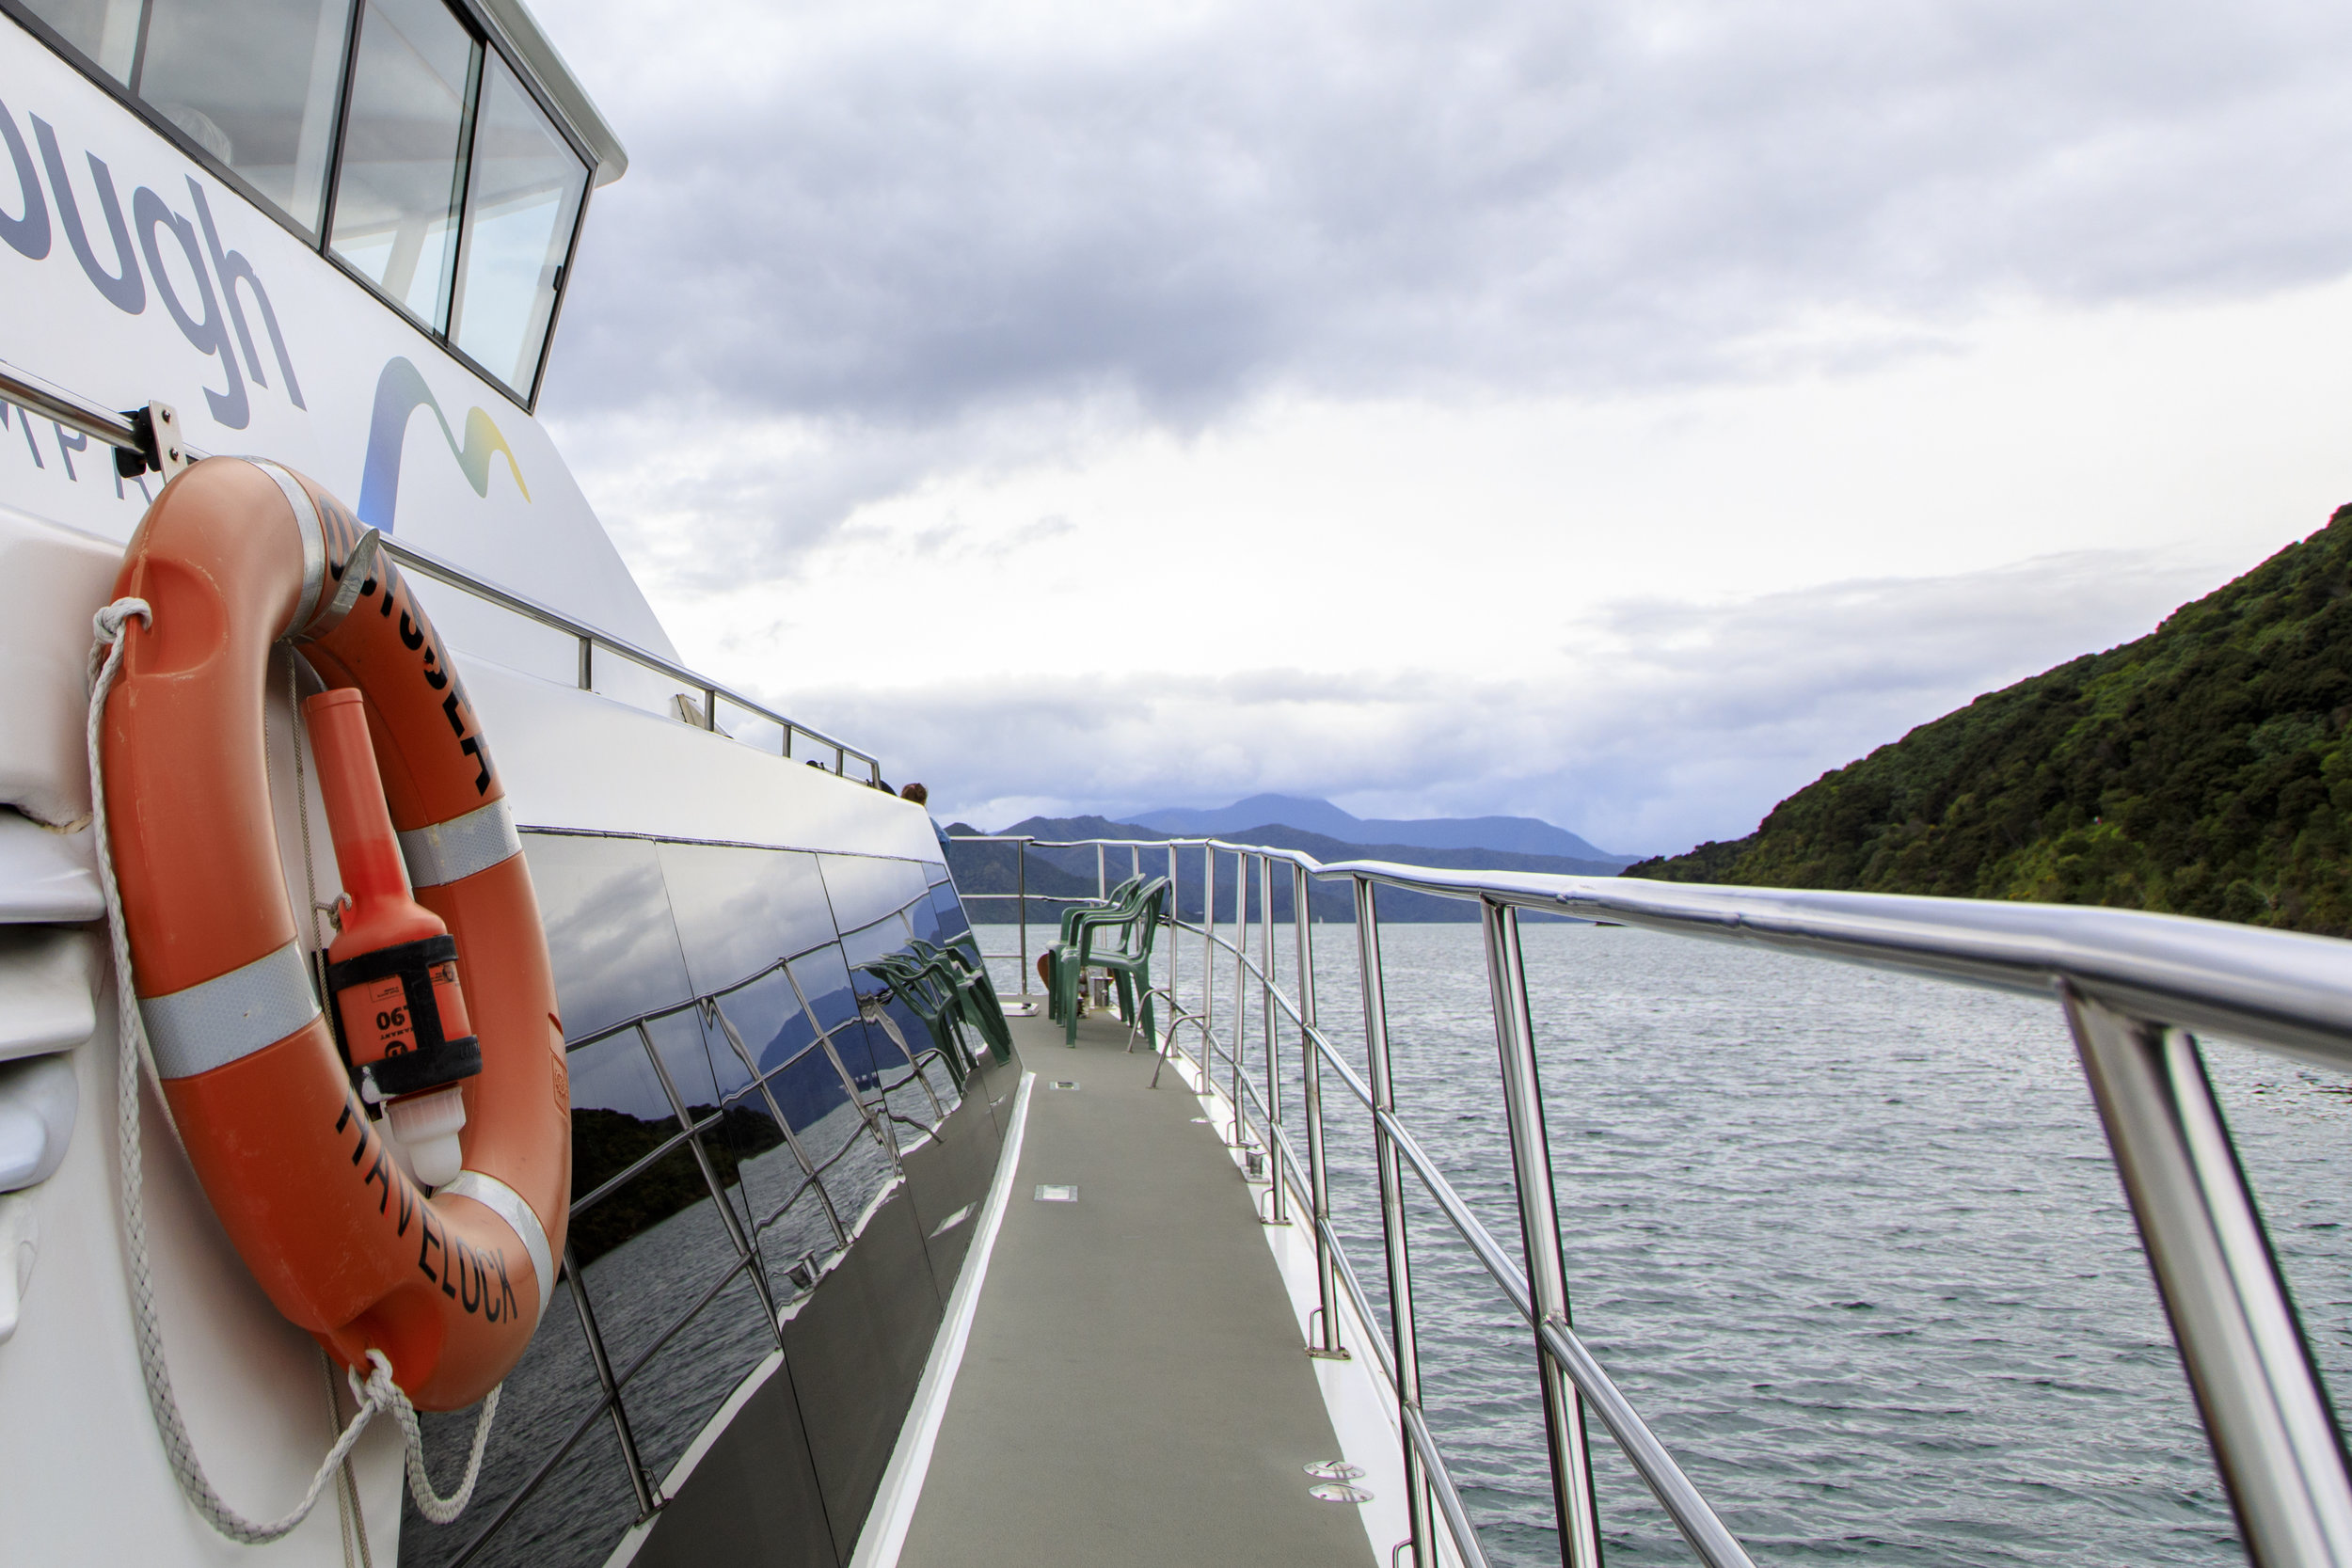 Marlborough Tour Company's Odyssey heading out from Picton